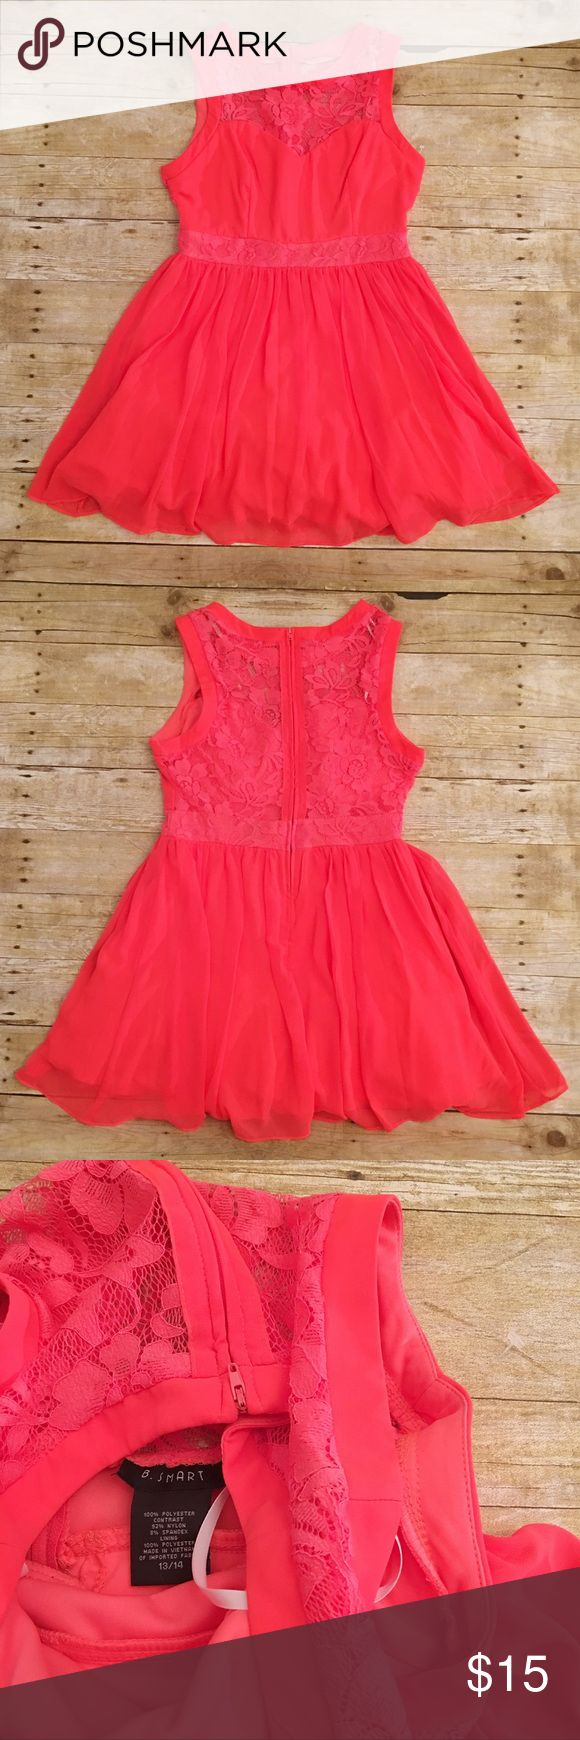 NWOT neon pink B. smart lace dress, 13/14 NWOT neon pink B. Smart dress in a size 13/14. Almost more or a bright orange/pink mix. Like a bright coral. Beautiful full skirt with plenty of tulle underneath. Total length- approximately 32.5 inches, waist- approximately 14.5 inches, bust- approximately 17 inches. B. Smart Dresses Midi